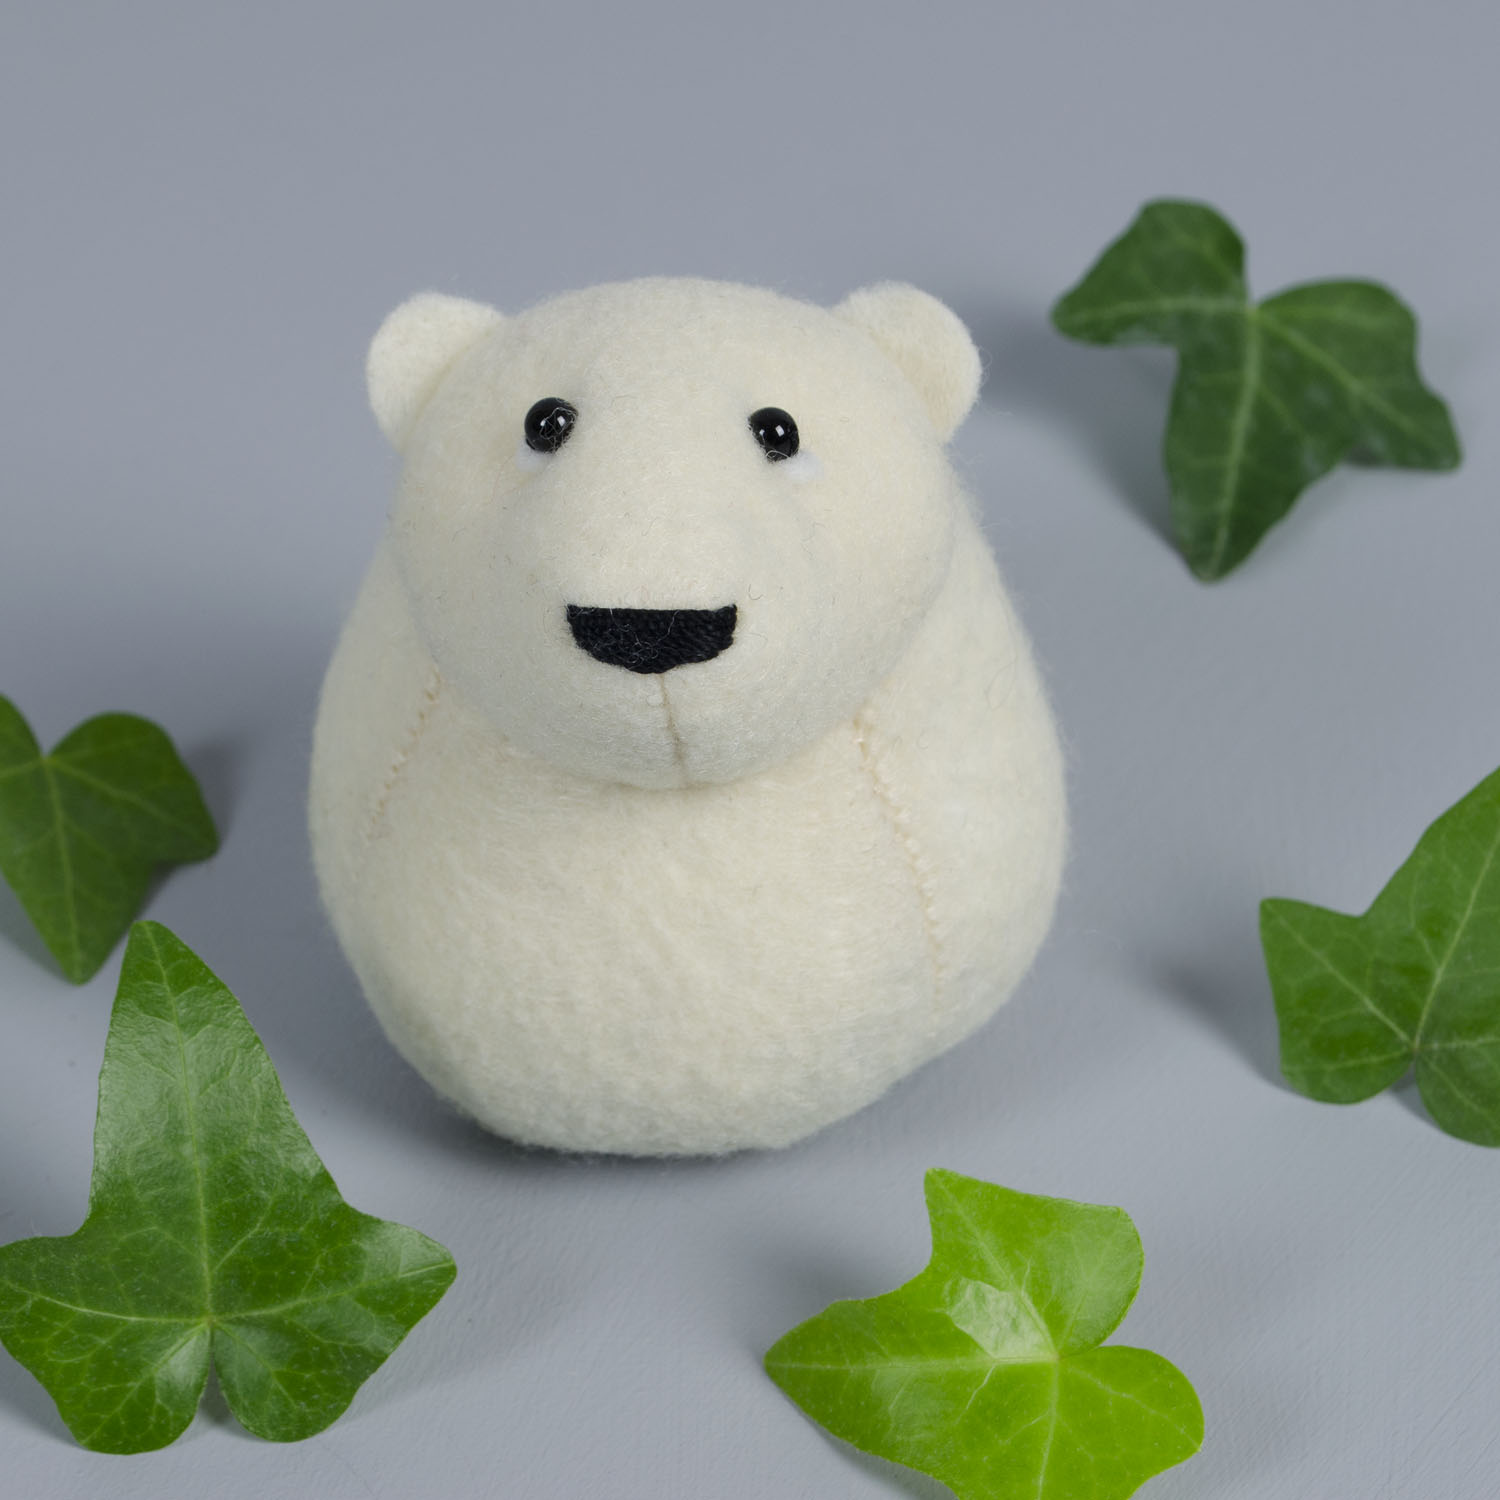 Onni the Polae Bear paperweight handmade from Kunin eco-fi felt made from plastic bottles | by Bilberry Woods.jpg